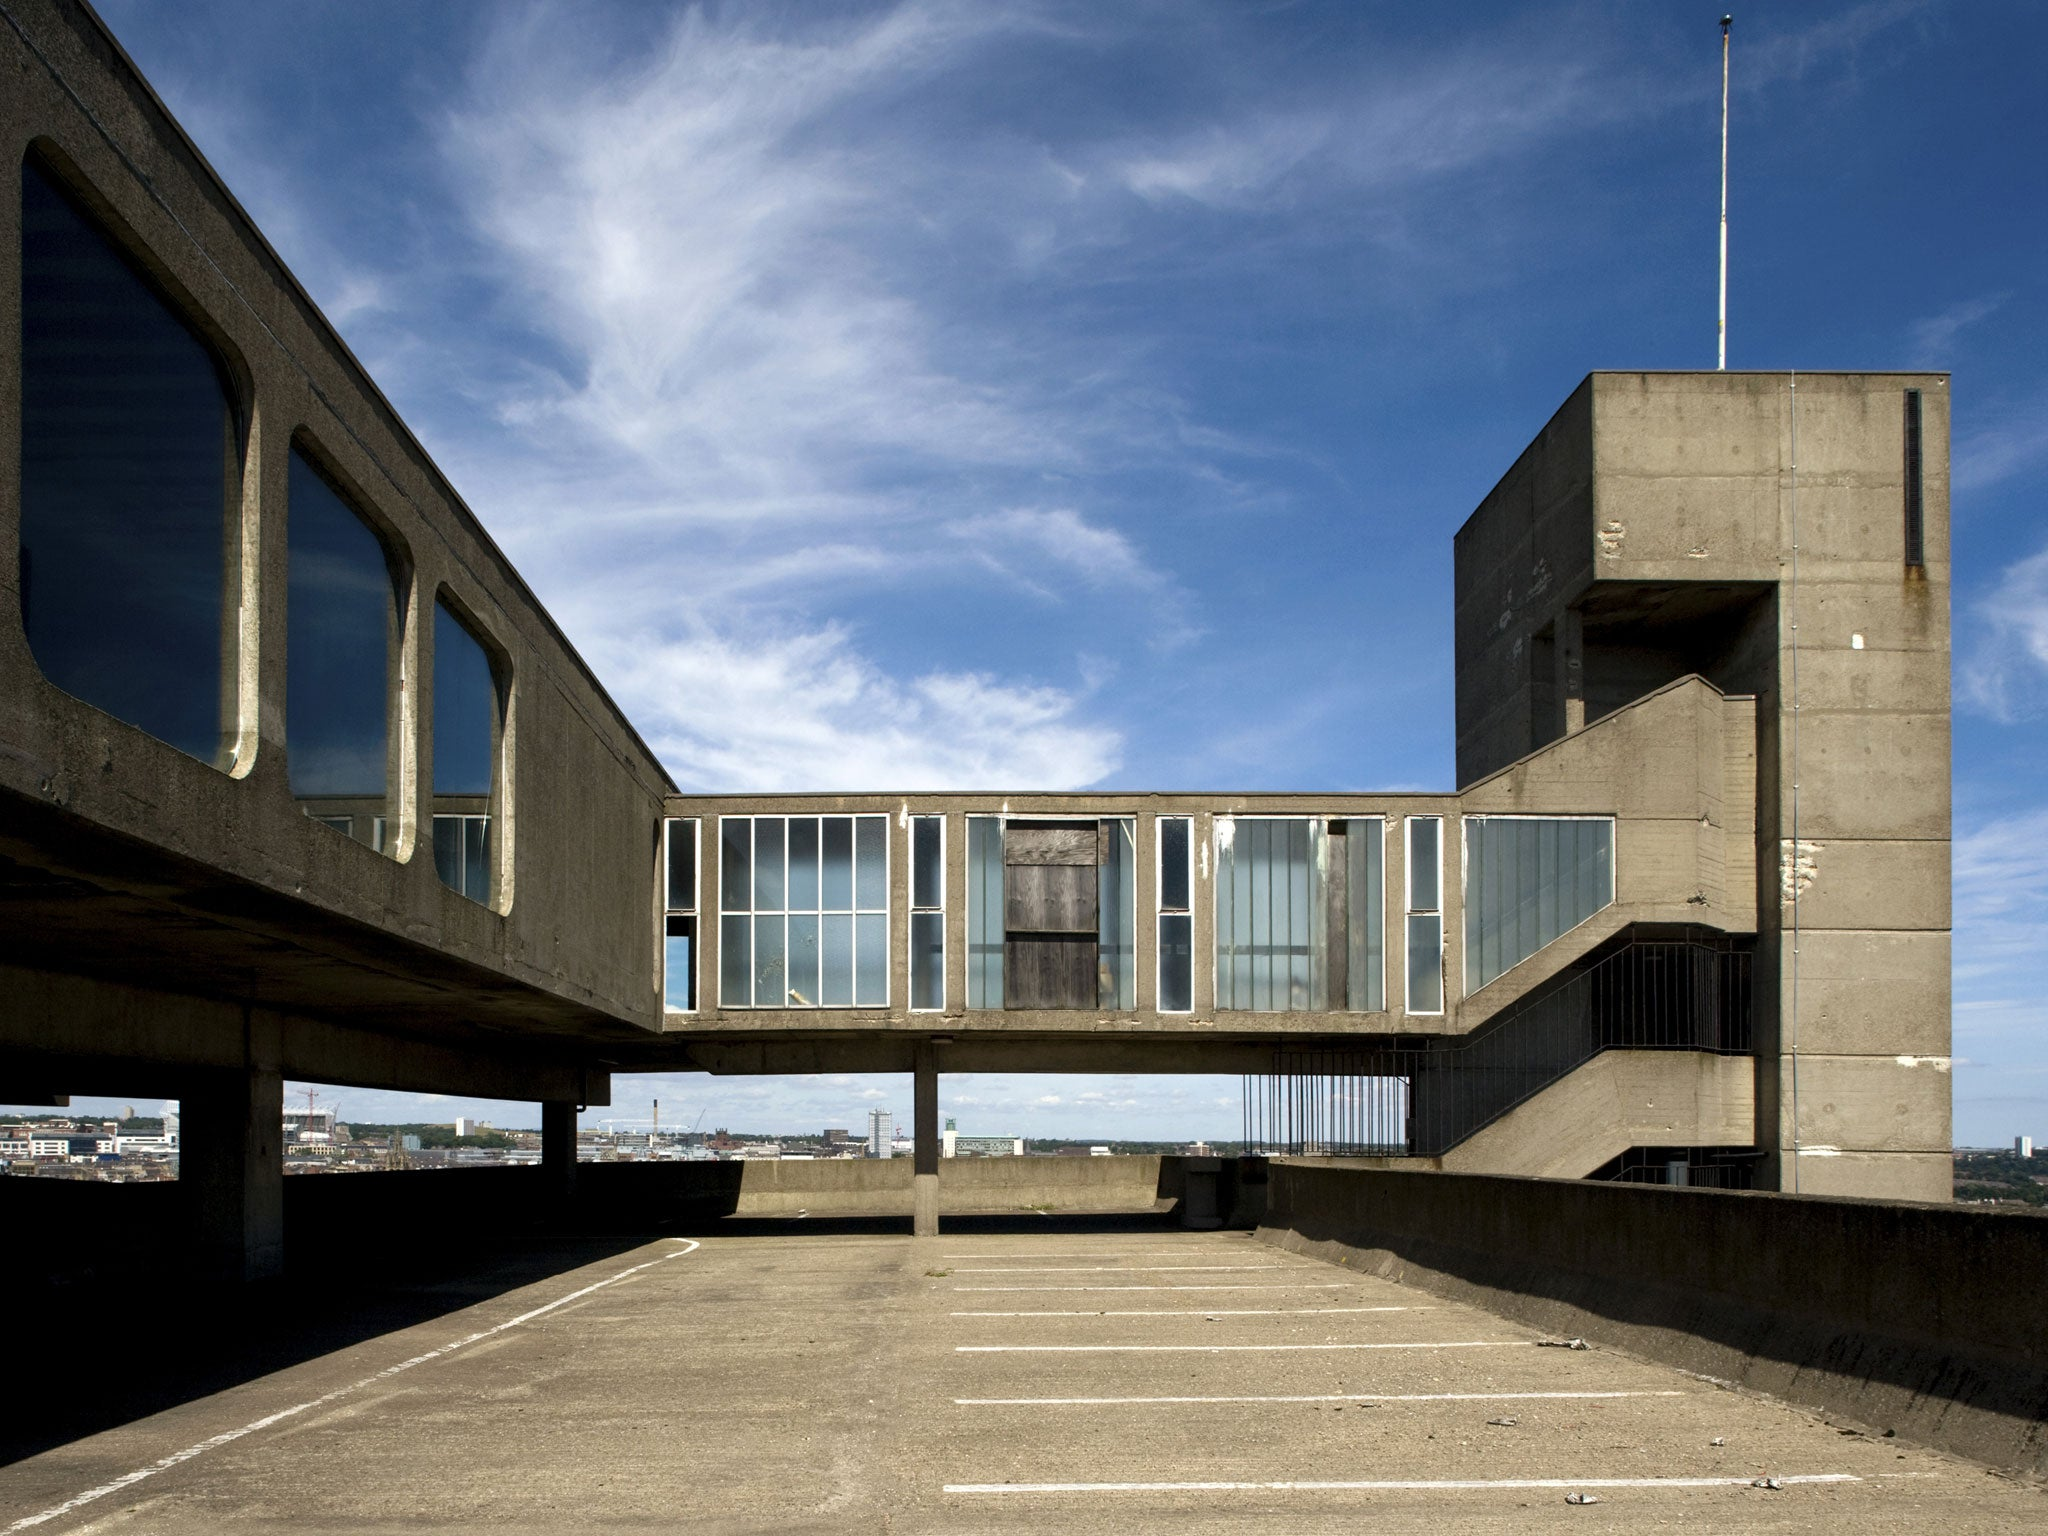 Concrete buildings brutalist beauty the independent for Architecture brutaliste